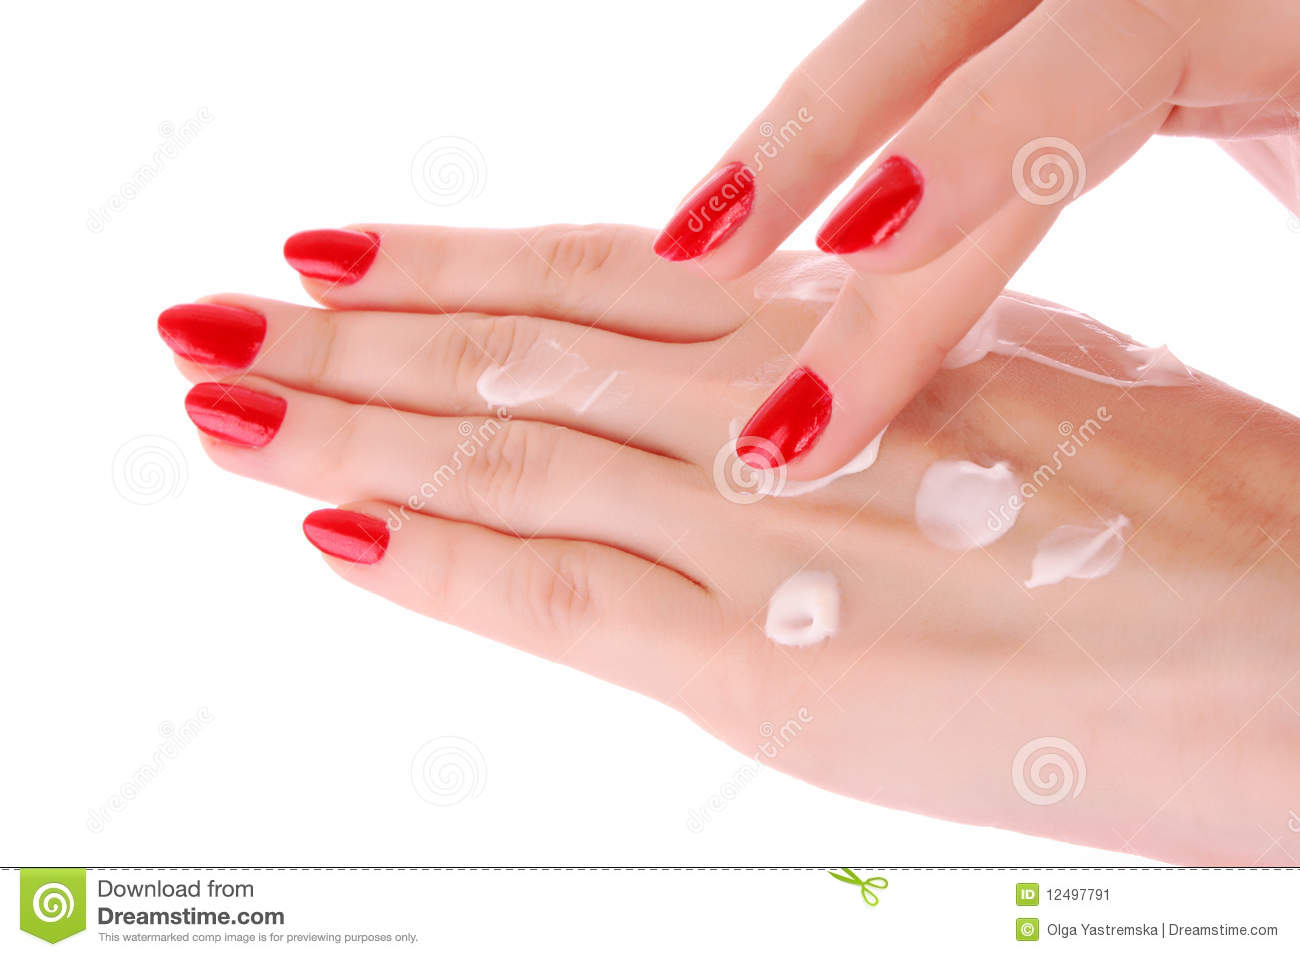 Hands With Body Cream Stock Image - Image: 12497791